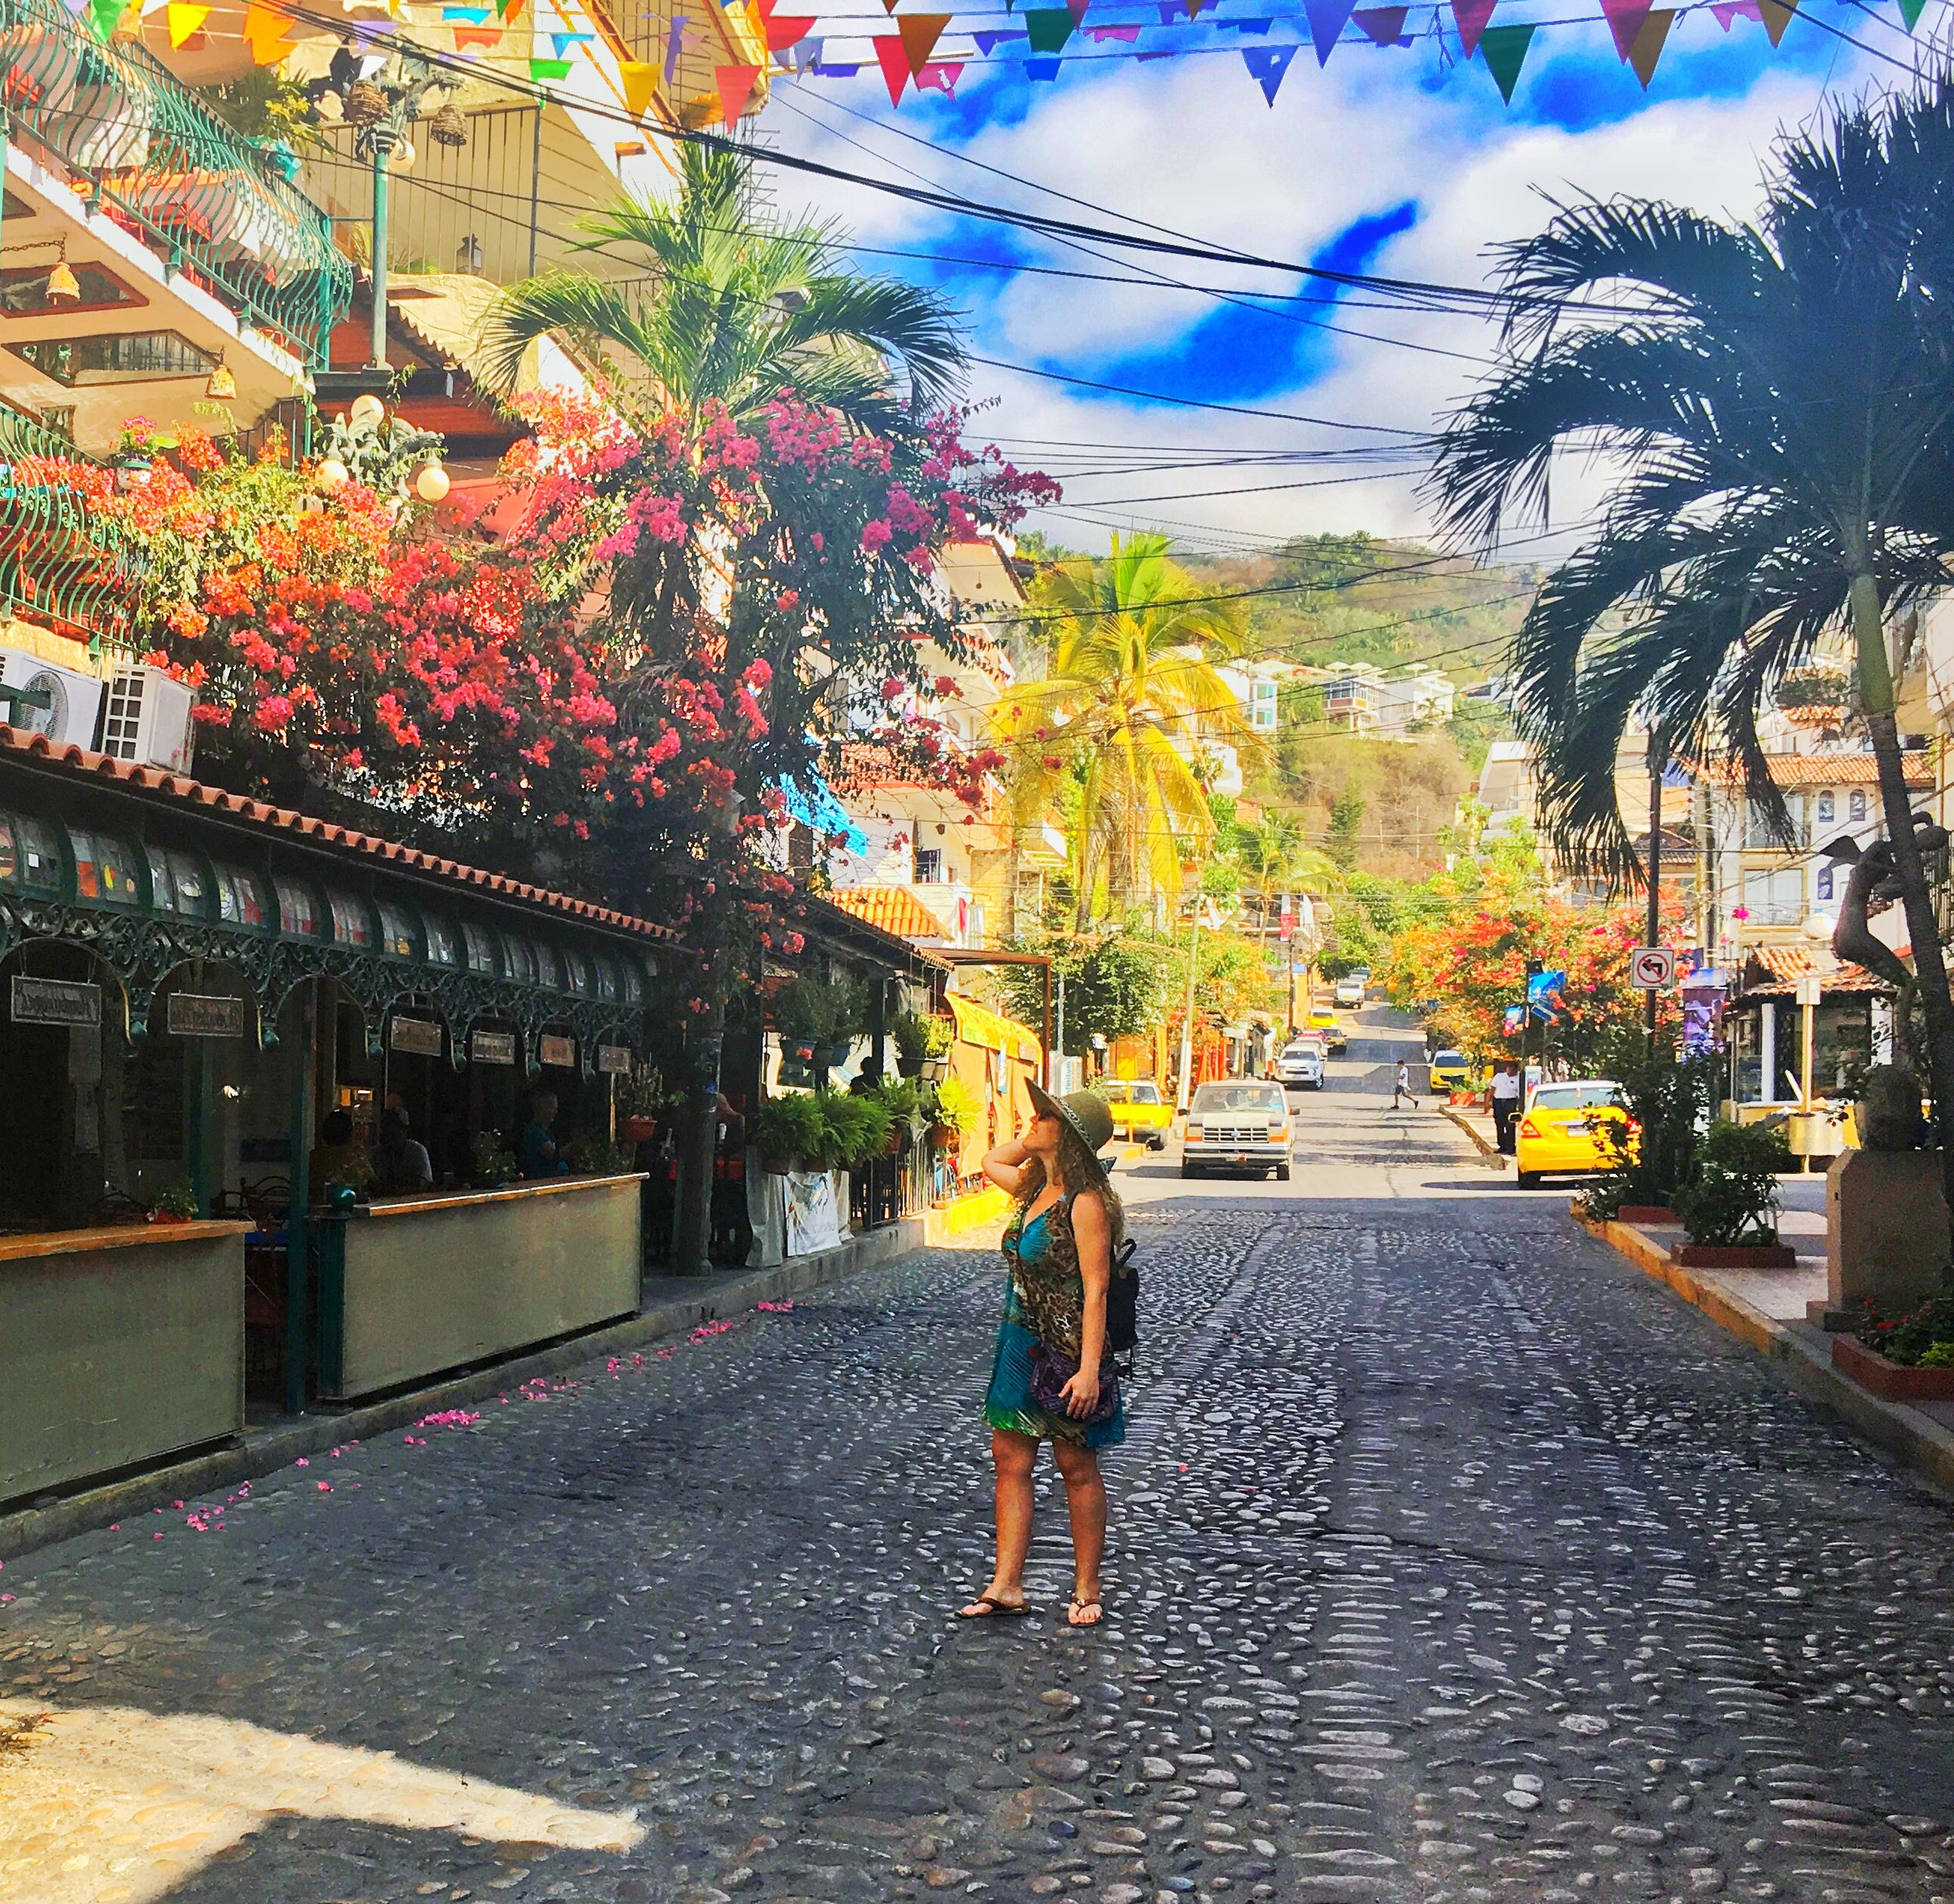 Wandering the streets of downtown PV